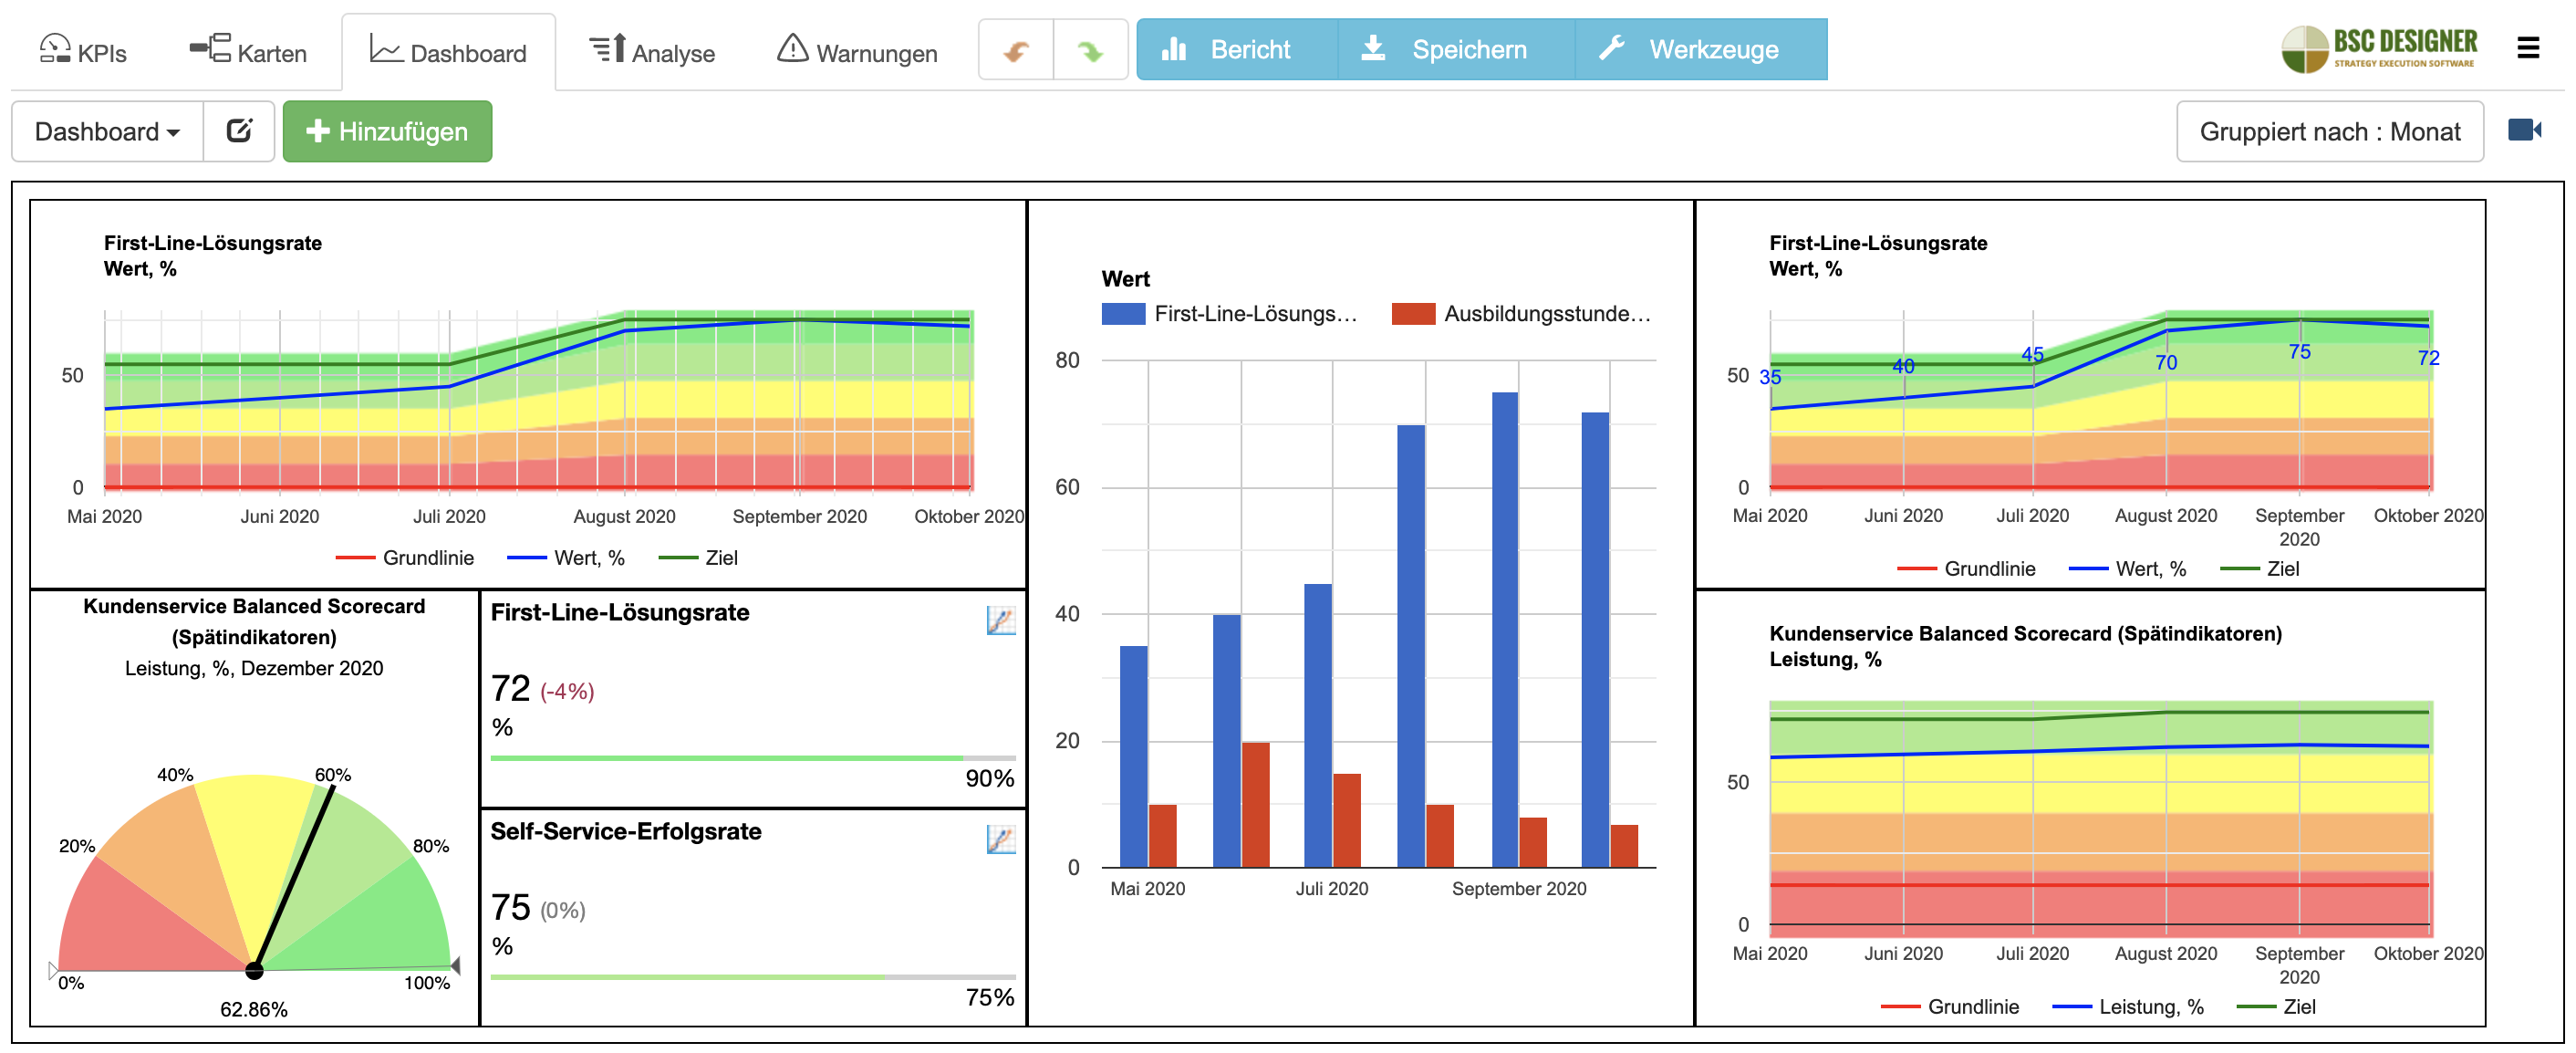 BI-Dashboards in BSC Designer